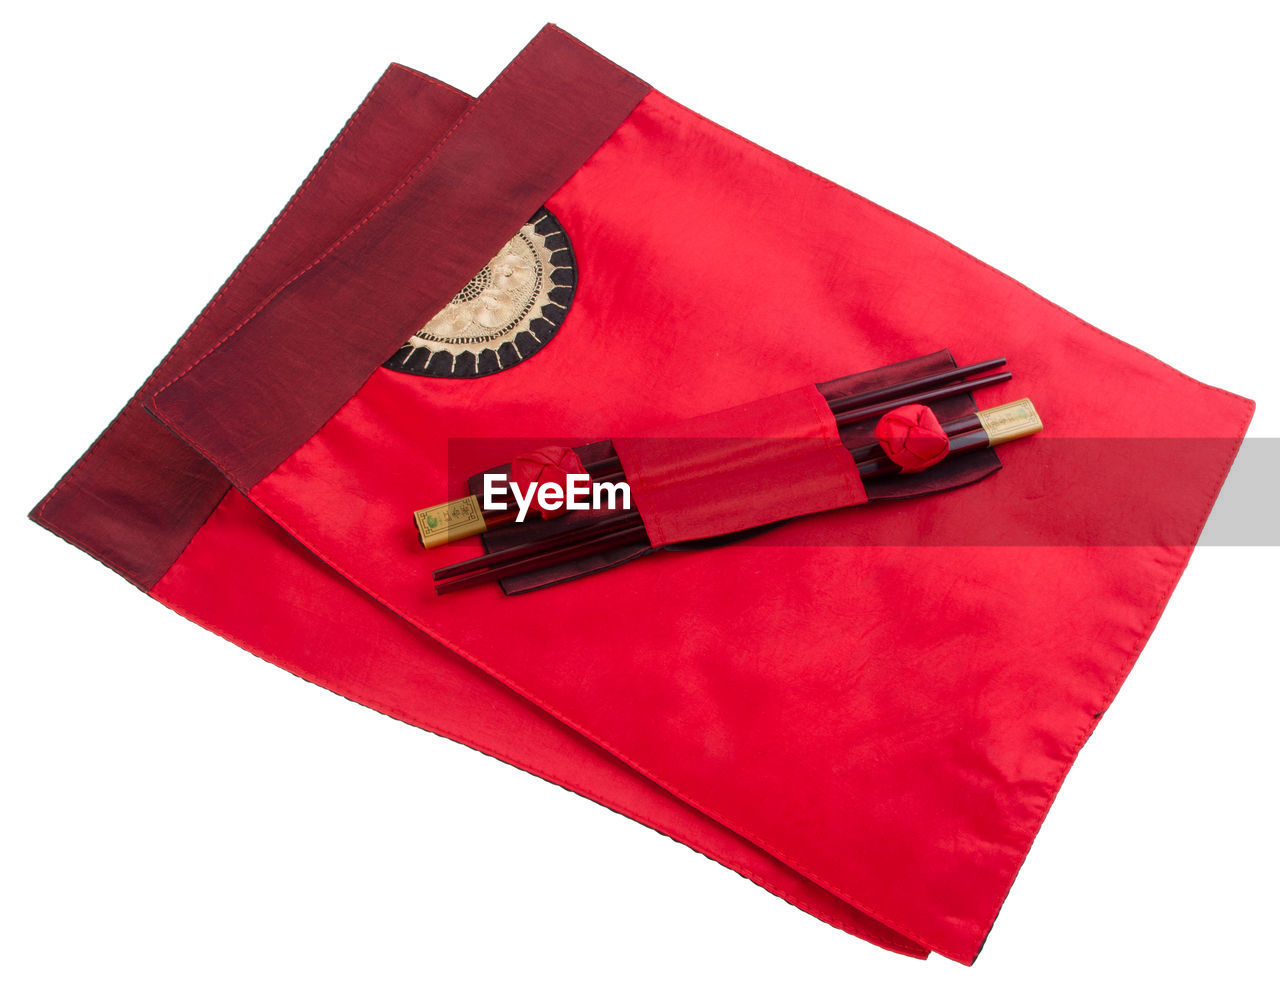 High angle view of chopsticks on red napkins against white background